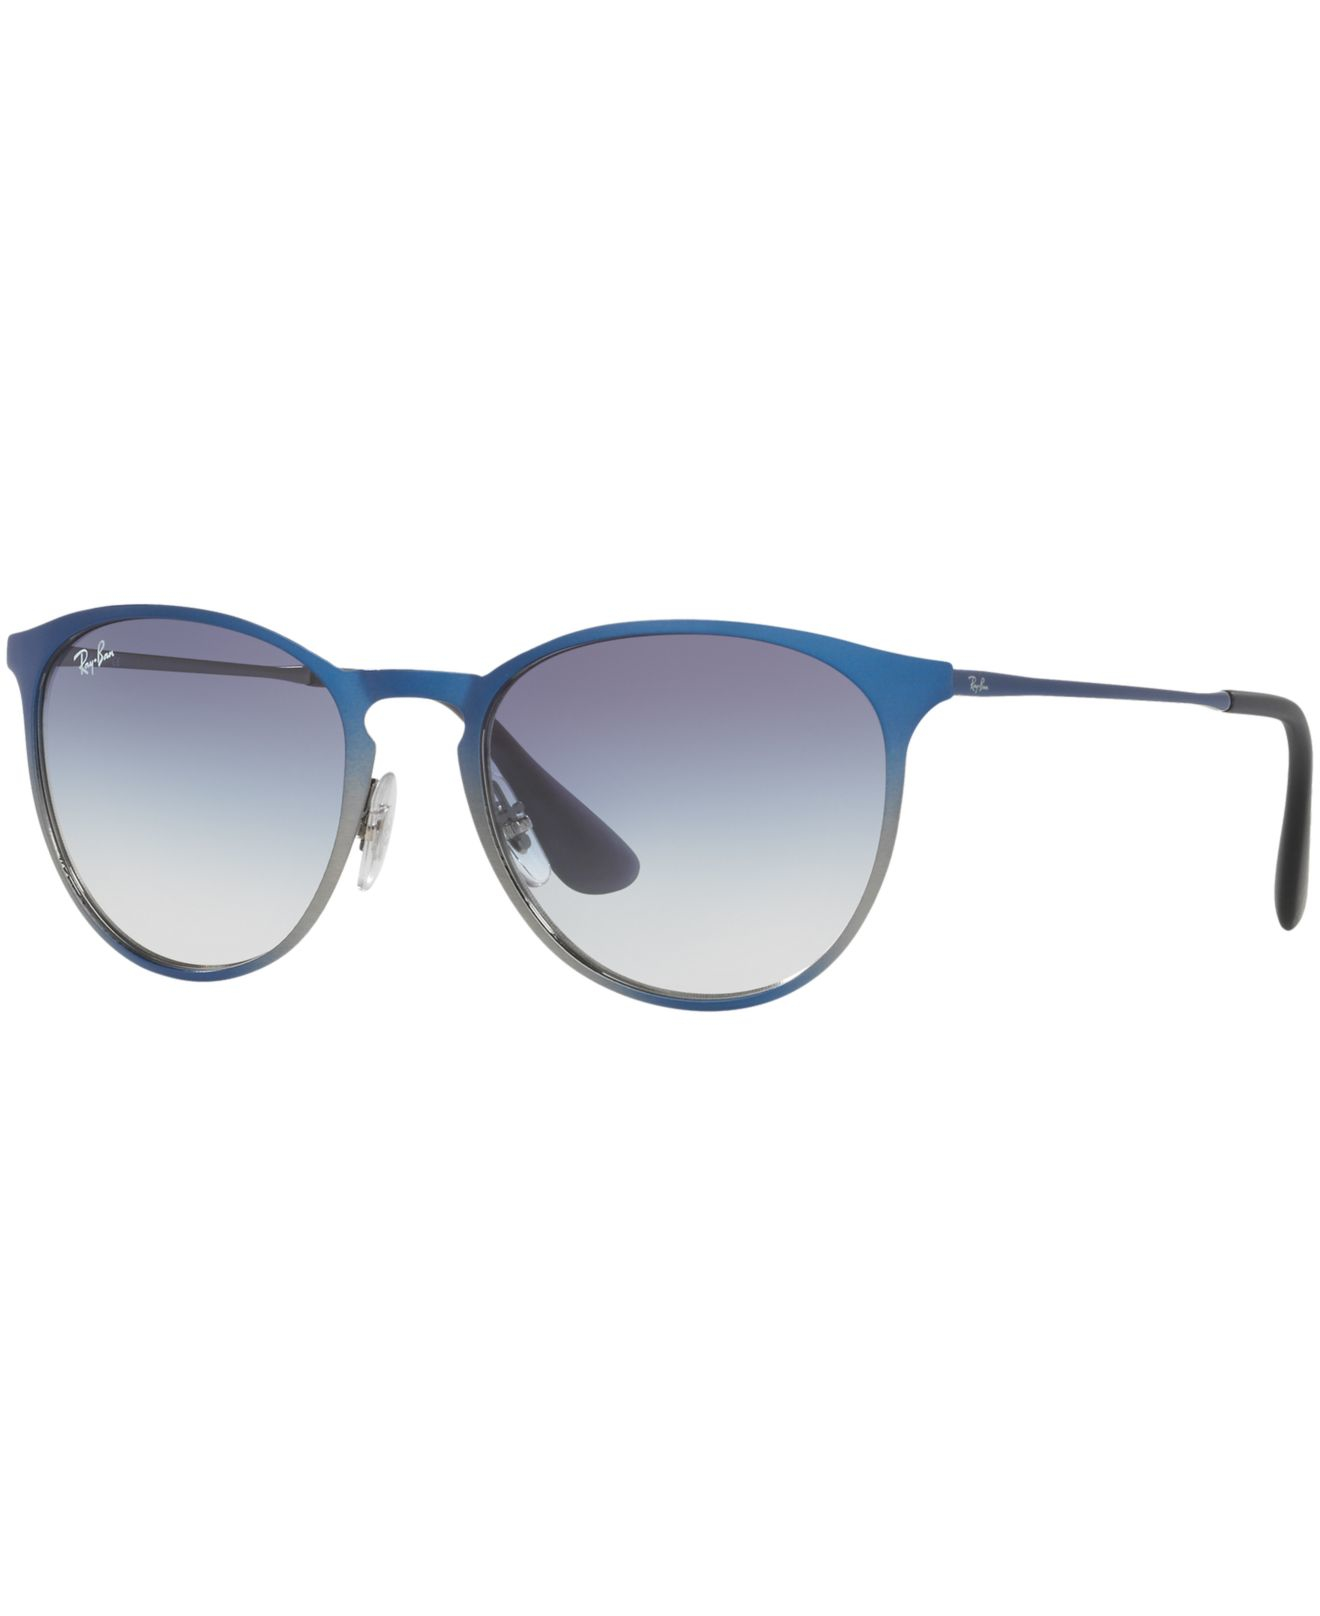 52038a7769 Mens Wayfair Sunglasses Ray Ban Amazon Package « Heritage Malta